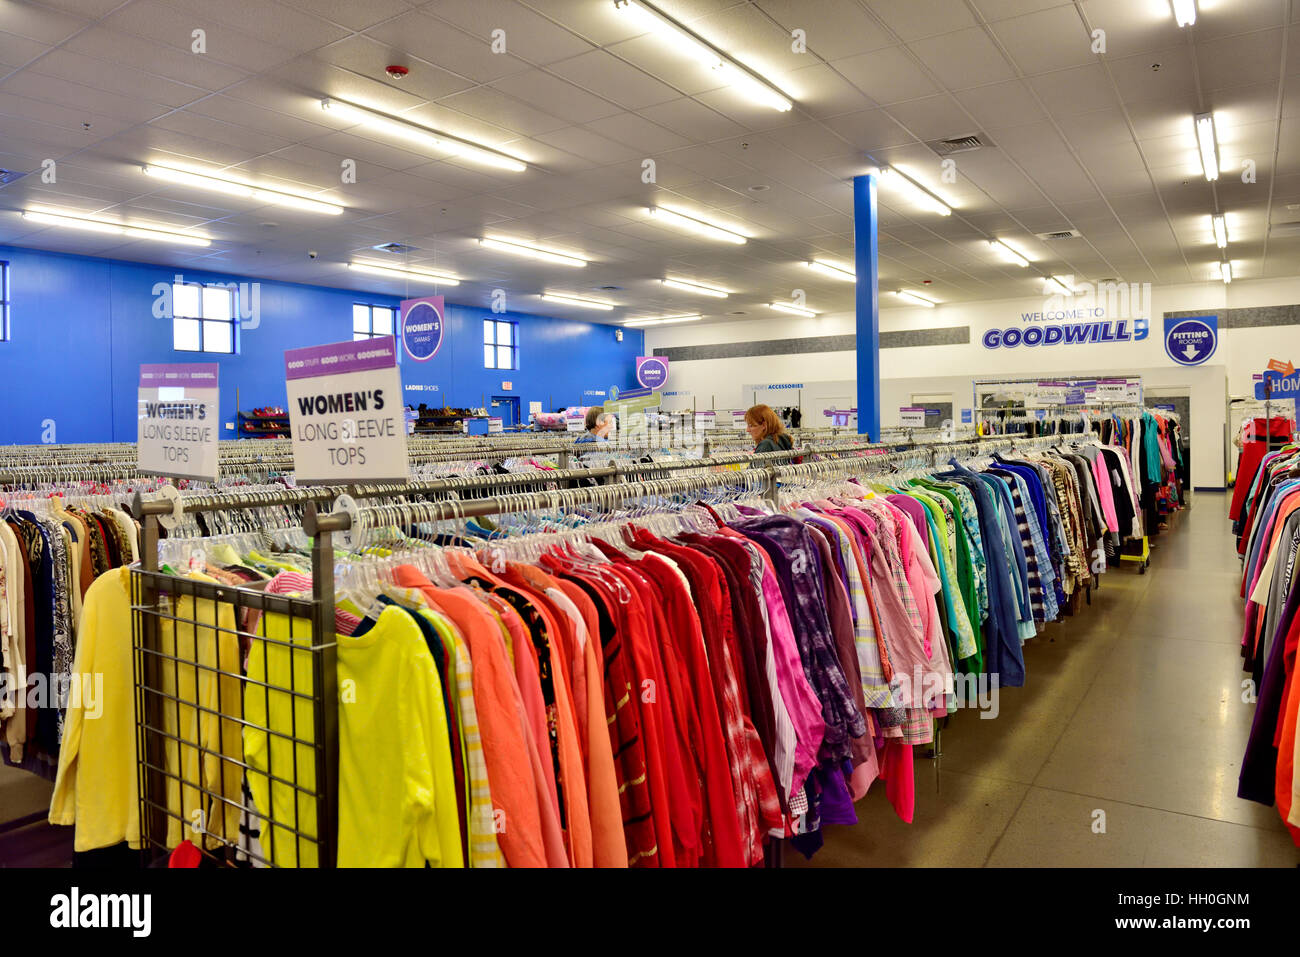 Rack of colorful woman's shirts for sale in a Goodwill store - Stock Image